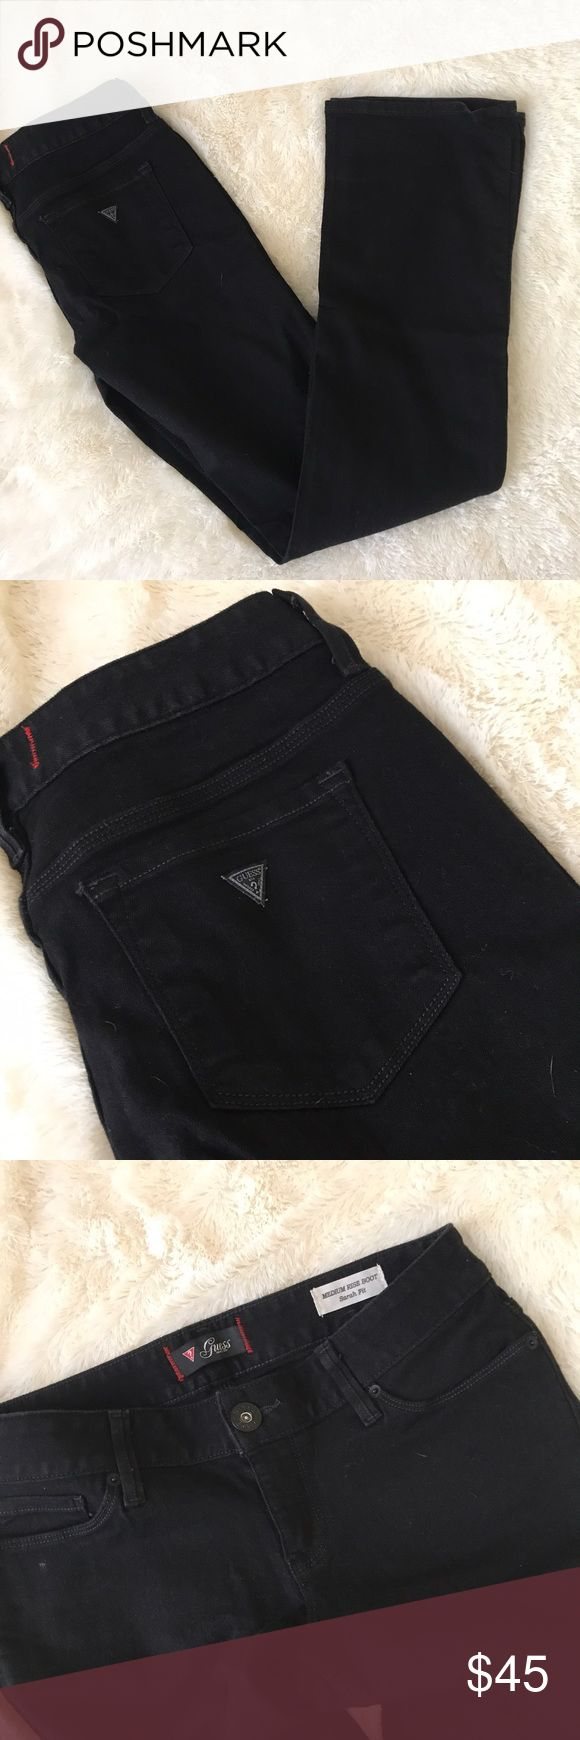 Black guess bootcut jeans 29 These are stretchy black bootcut jeans from guess. Size is 29. In great donation. Make me an offer, no trades. Guess Pants Boot Cut & Flare